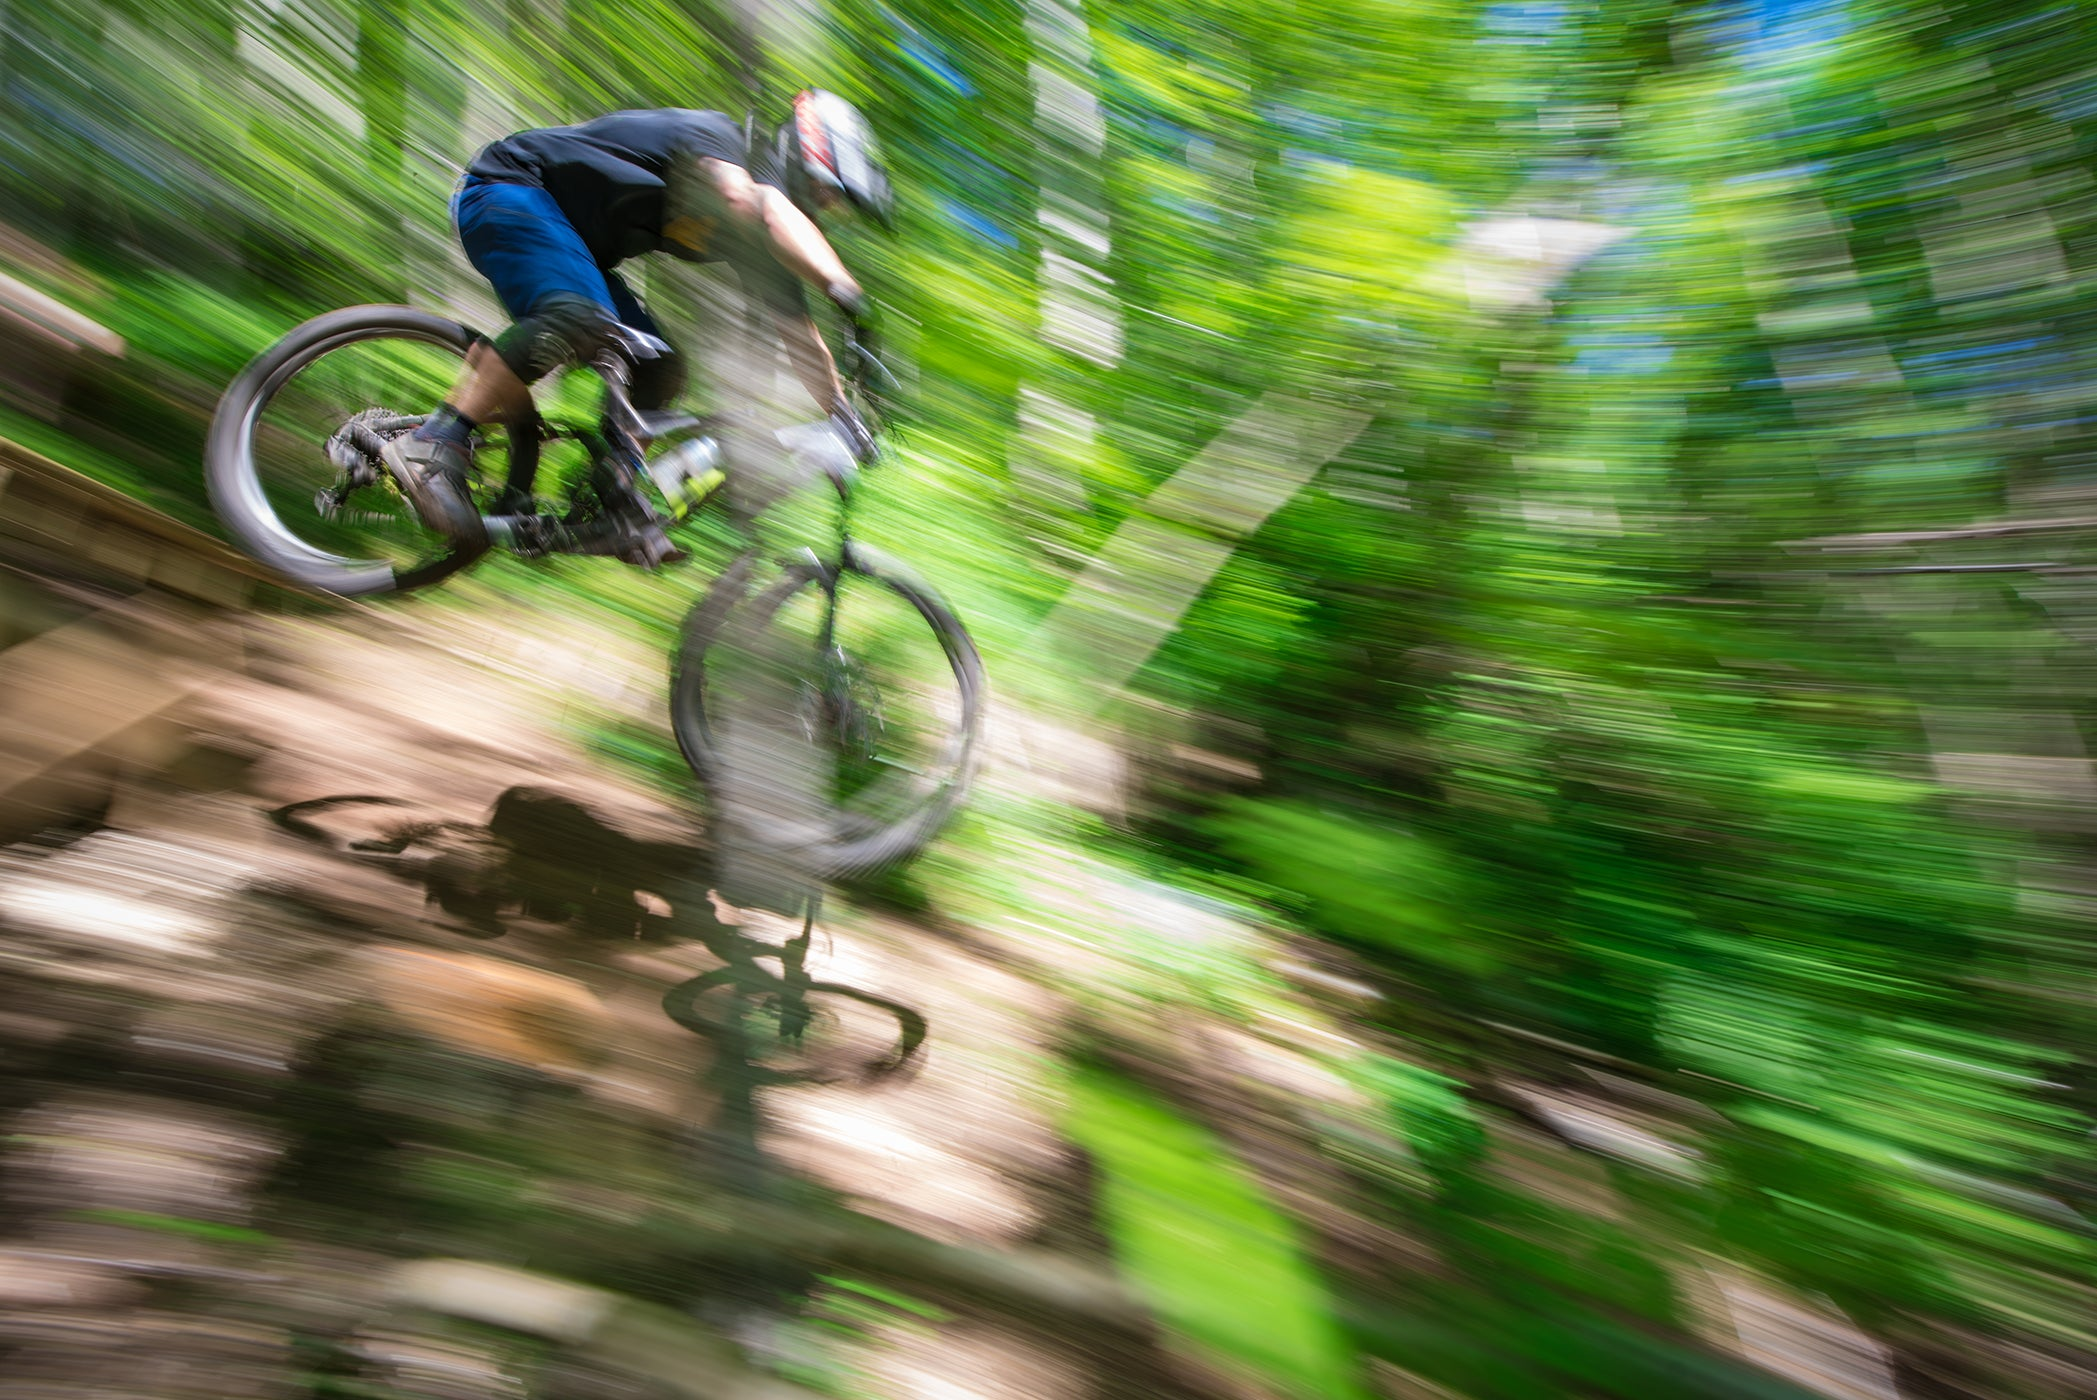 Mountain Biker riding downhill through green forest